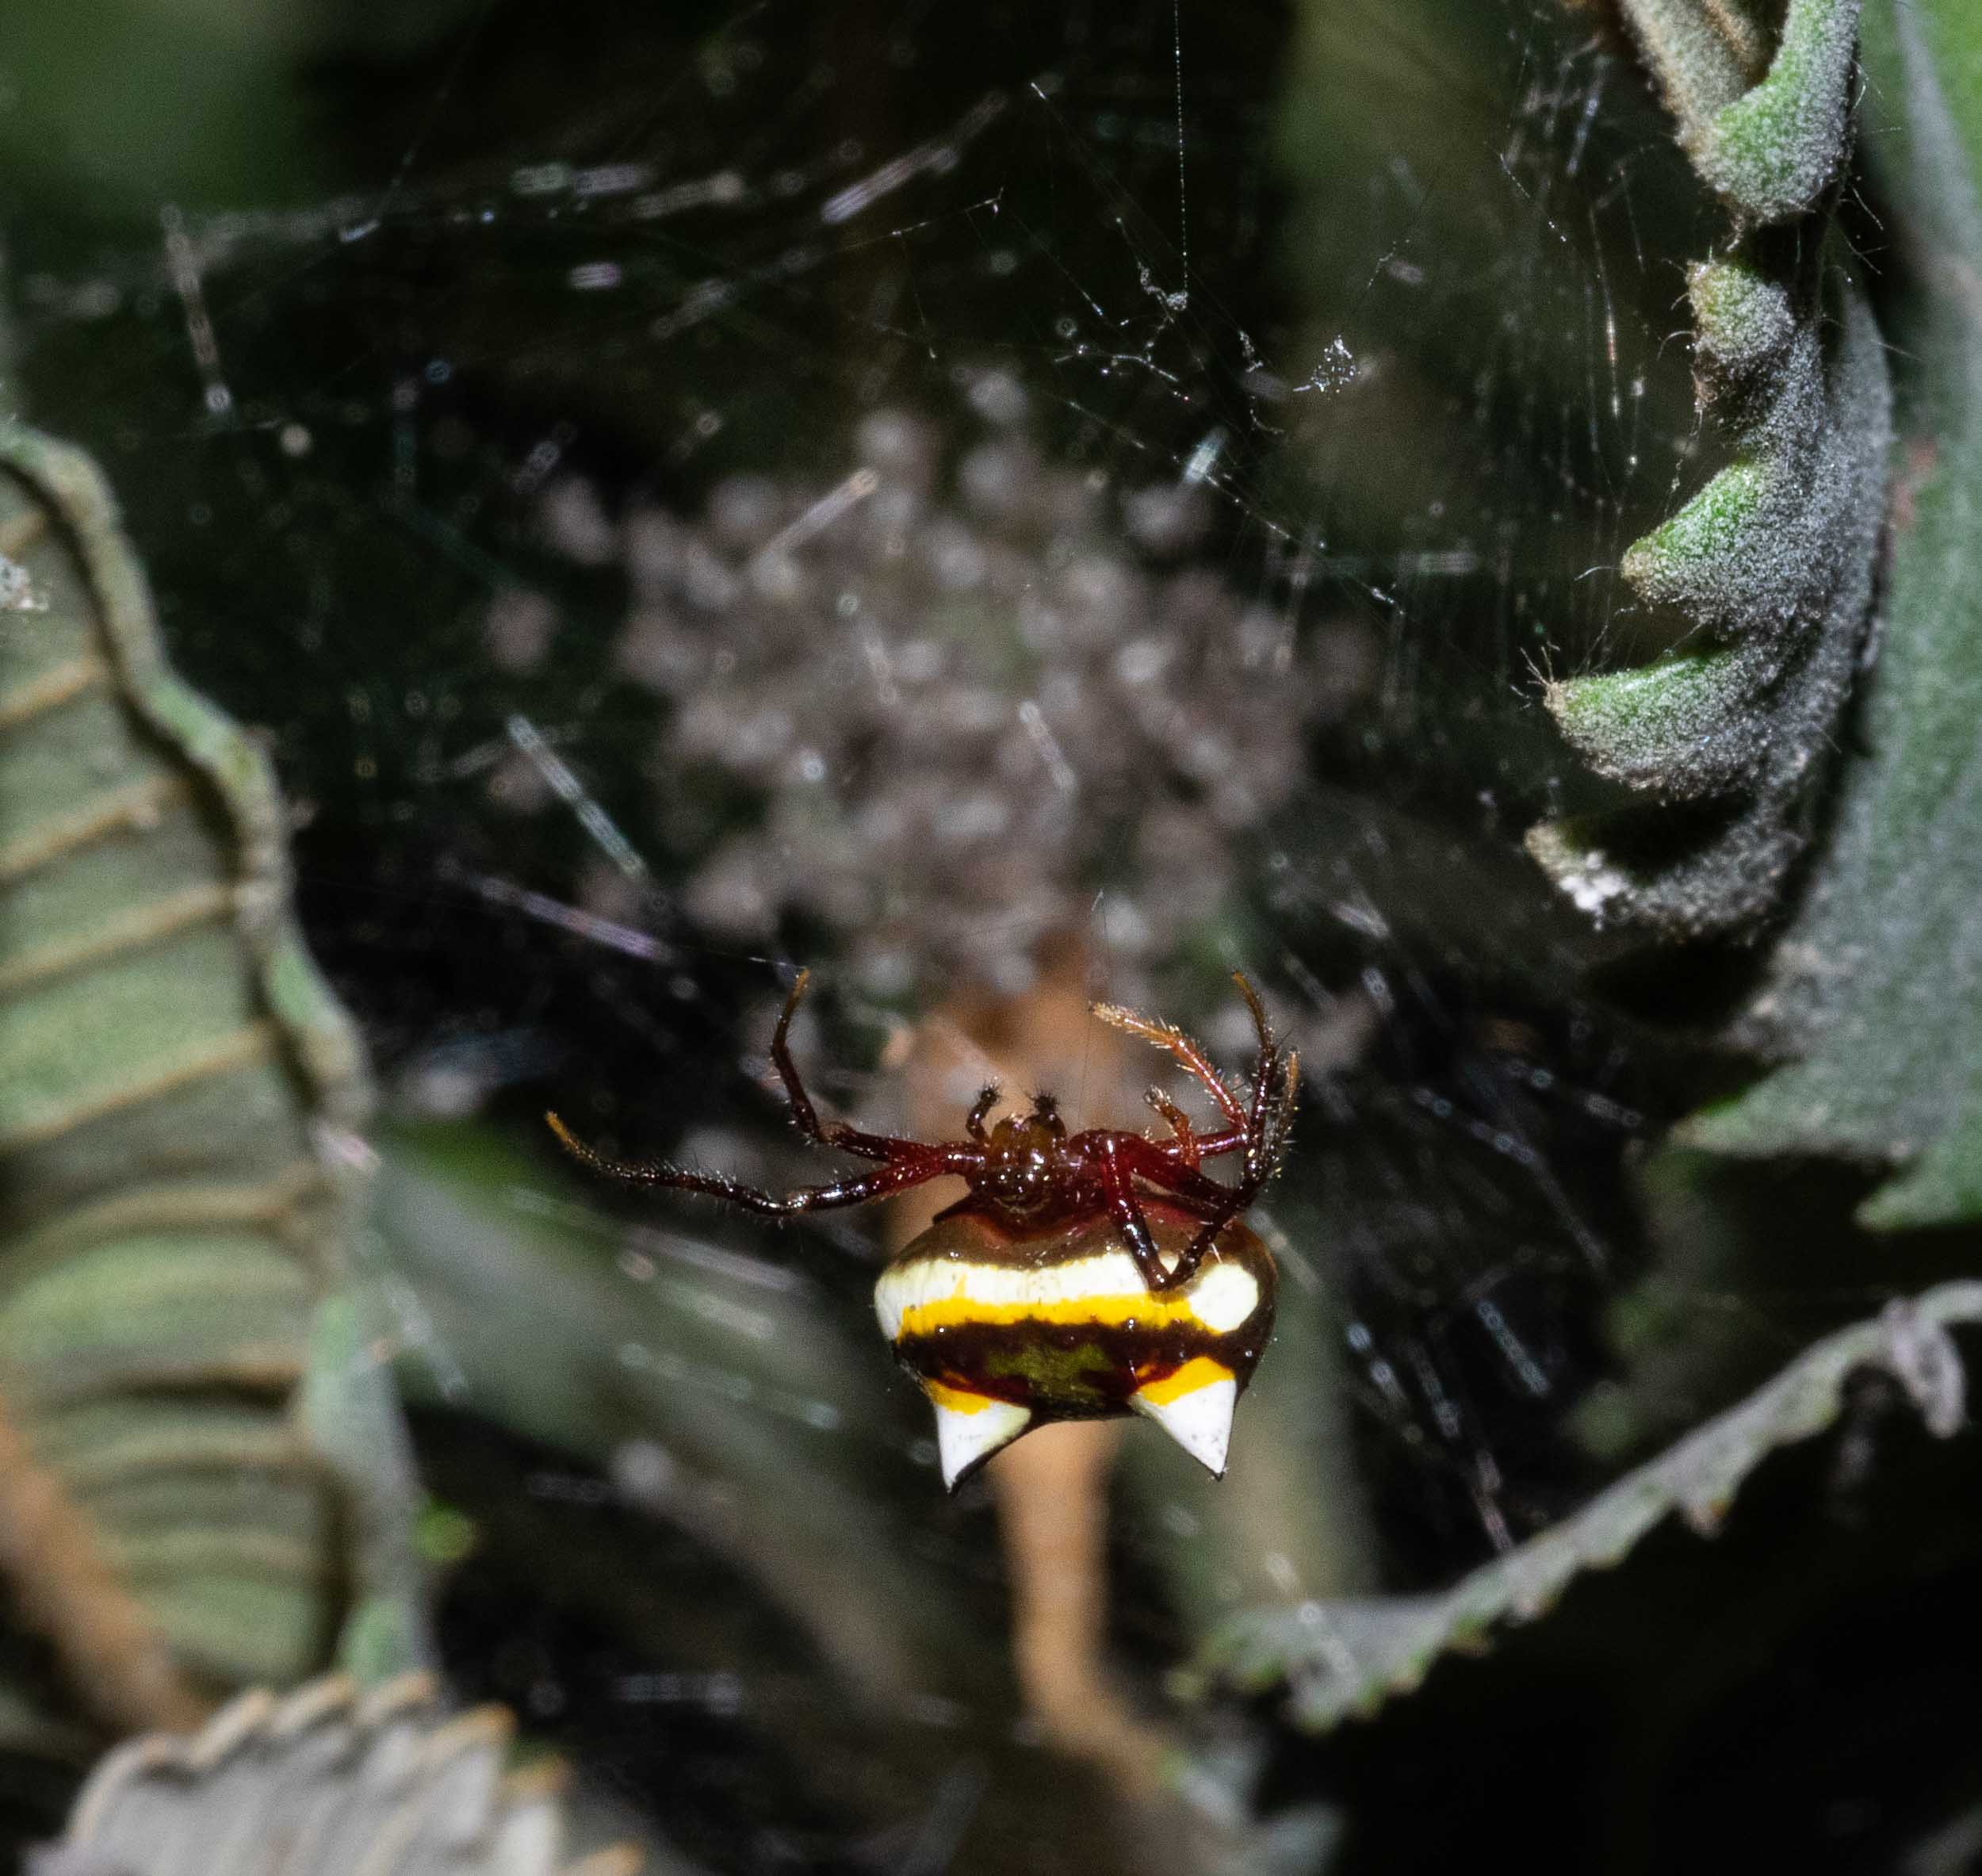 Poecilopachys australasia , the 'Two-spined Spider' - mature female